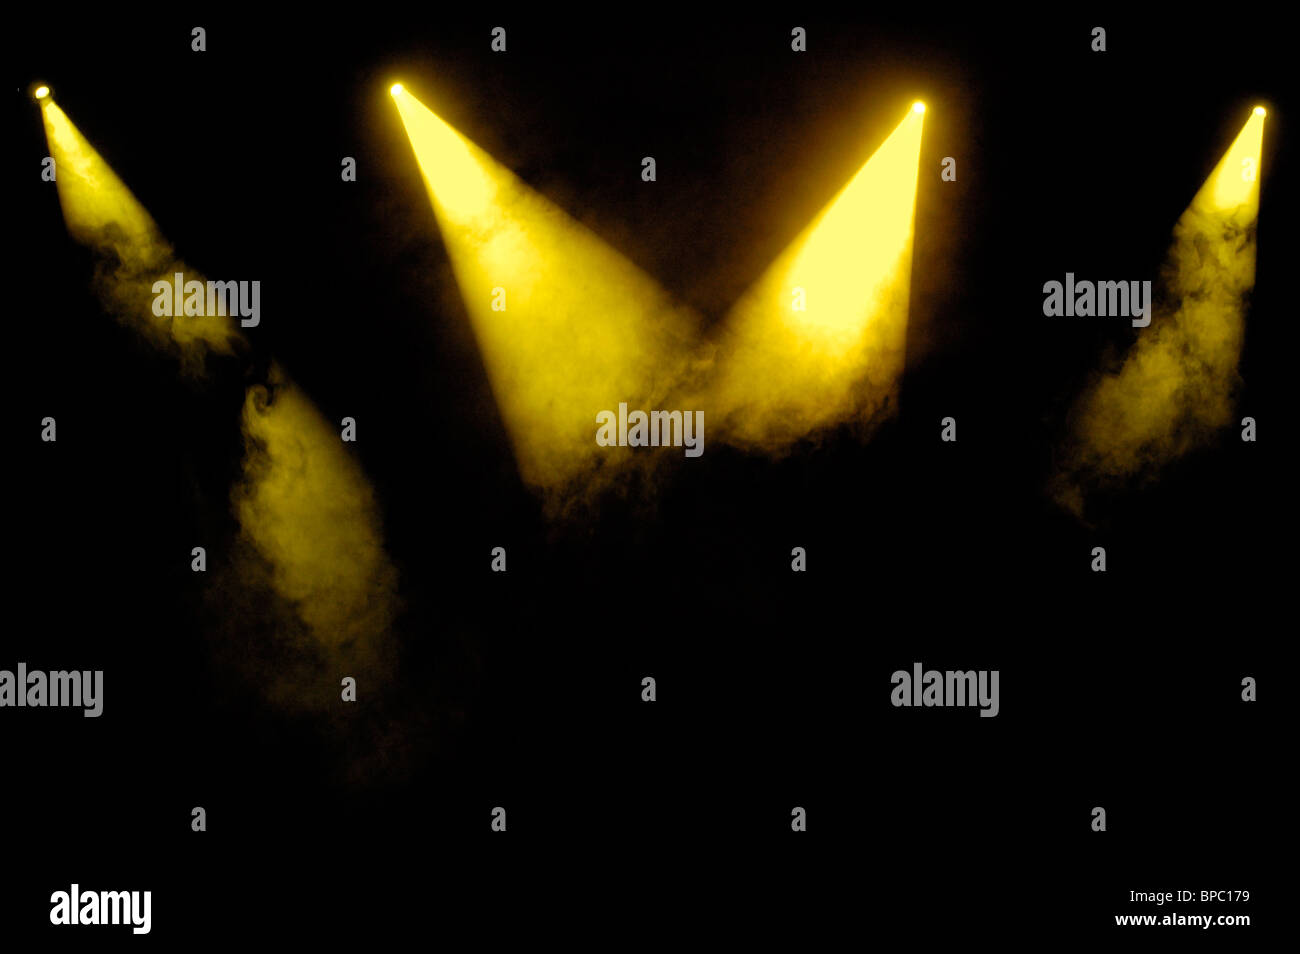 Yellow stage spotlights in smoke over black background - Stock Image